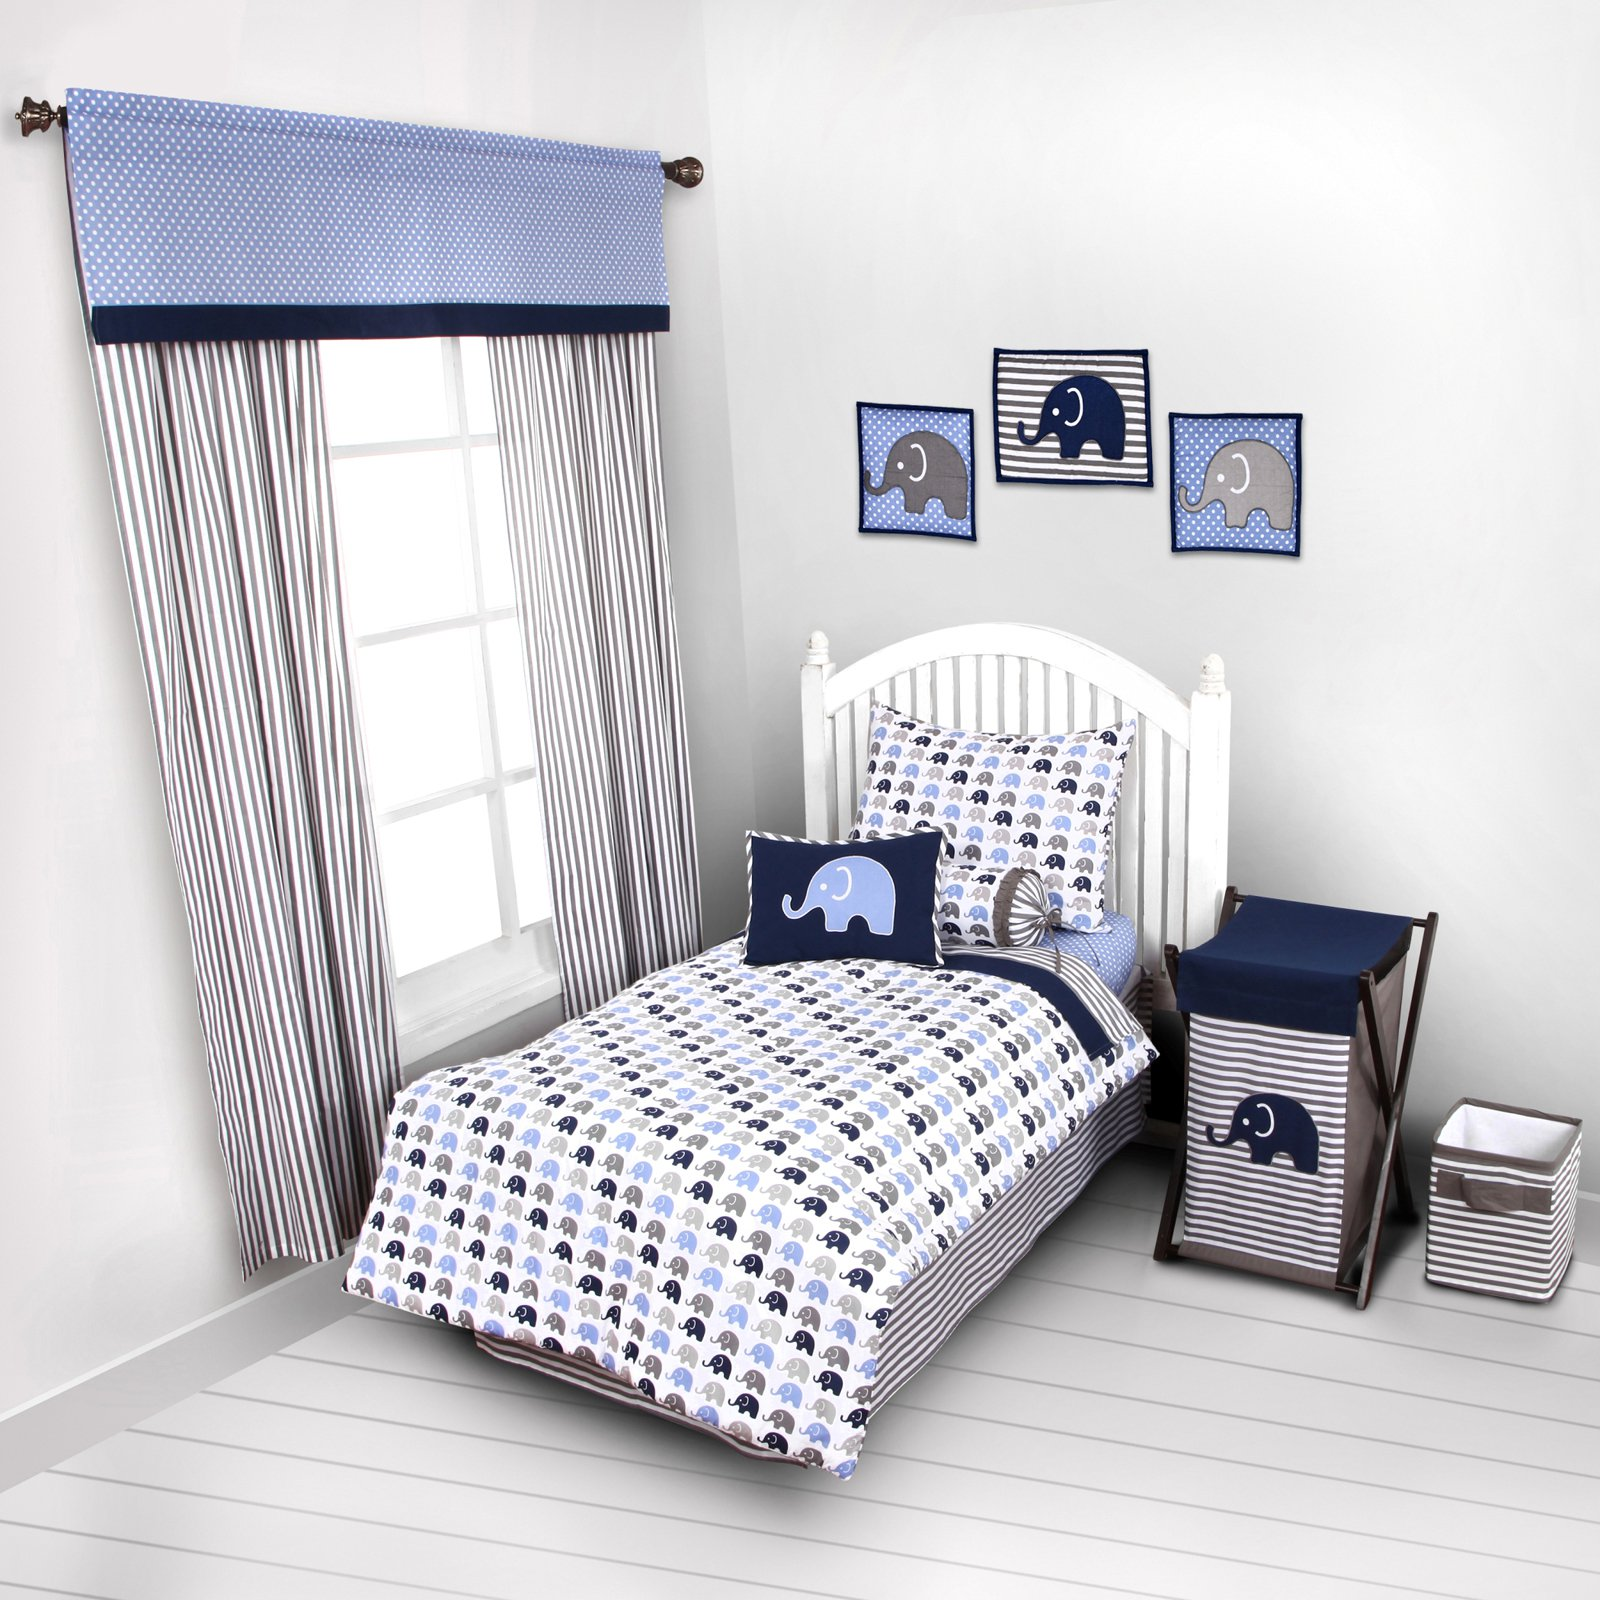 Bacati - Elephants 4-Piece Toddler Bedding set 100% Cotton percale,  Blue/Gray